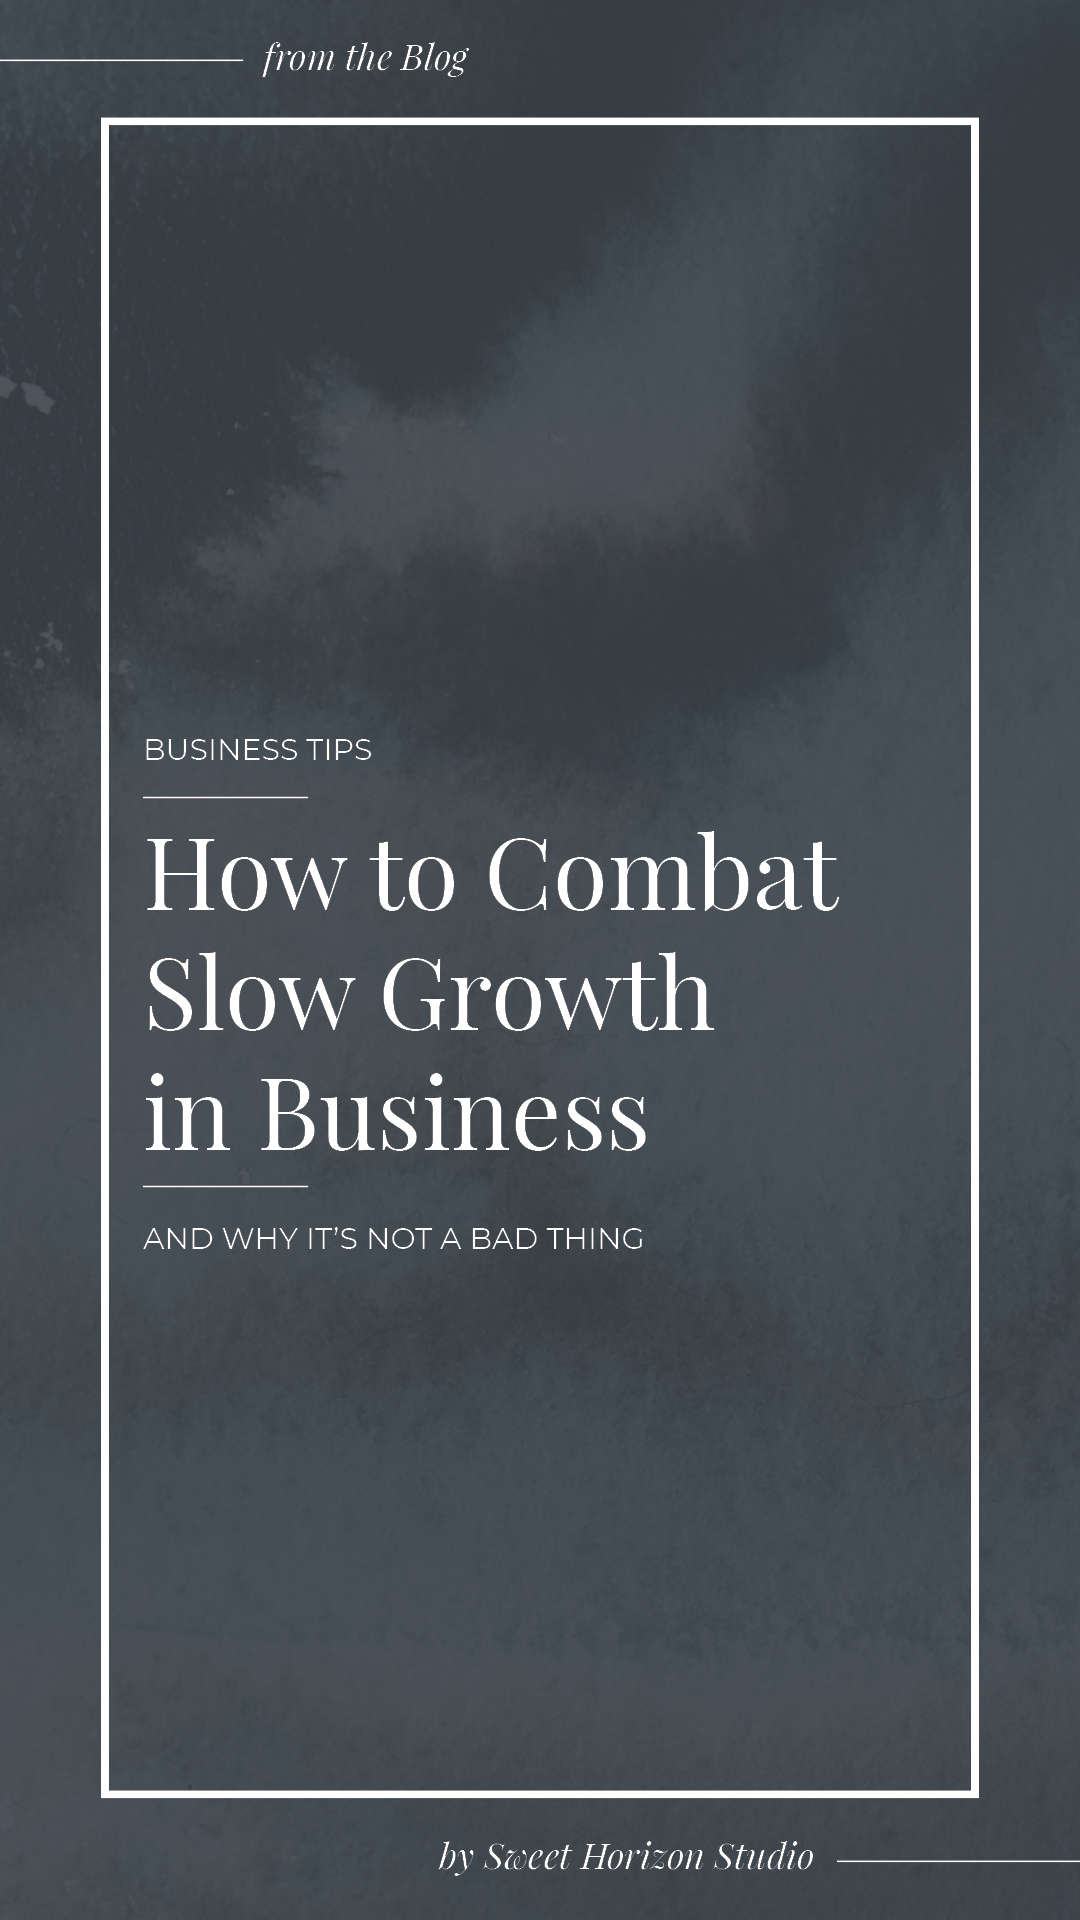 How to Combat Slow Growth in Business from www.sweethorizonblog.com